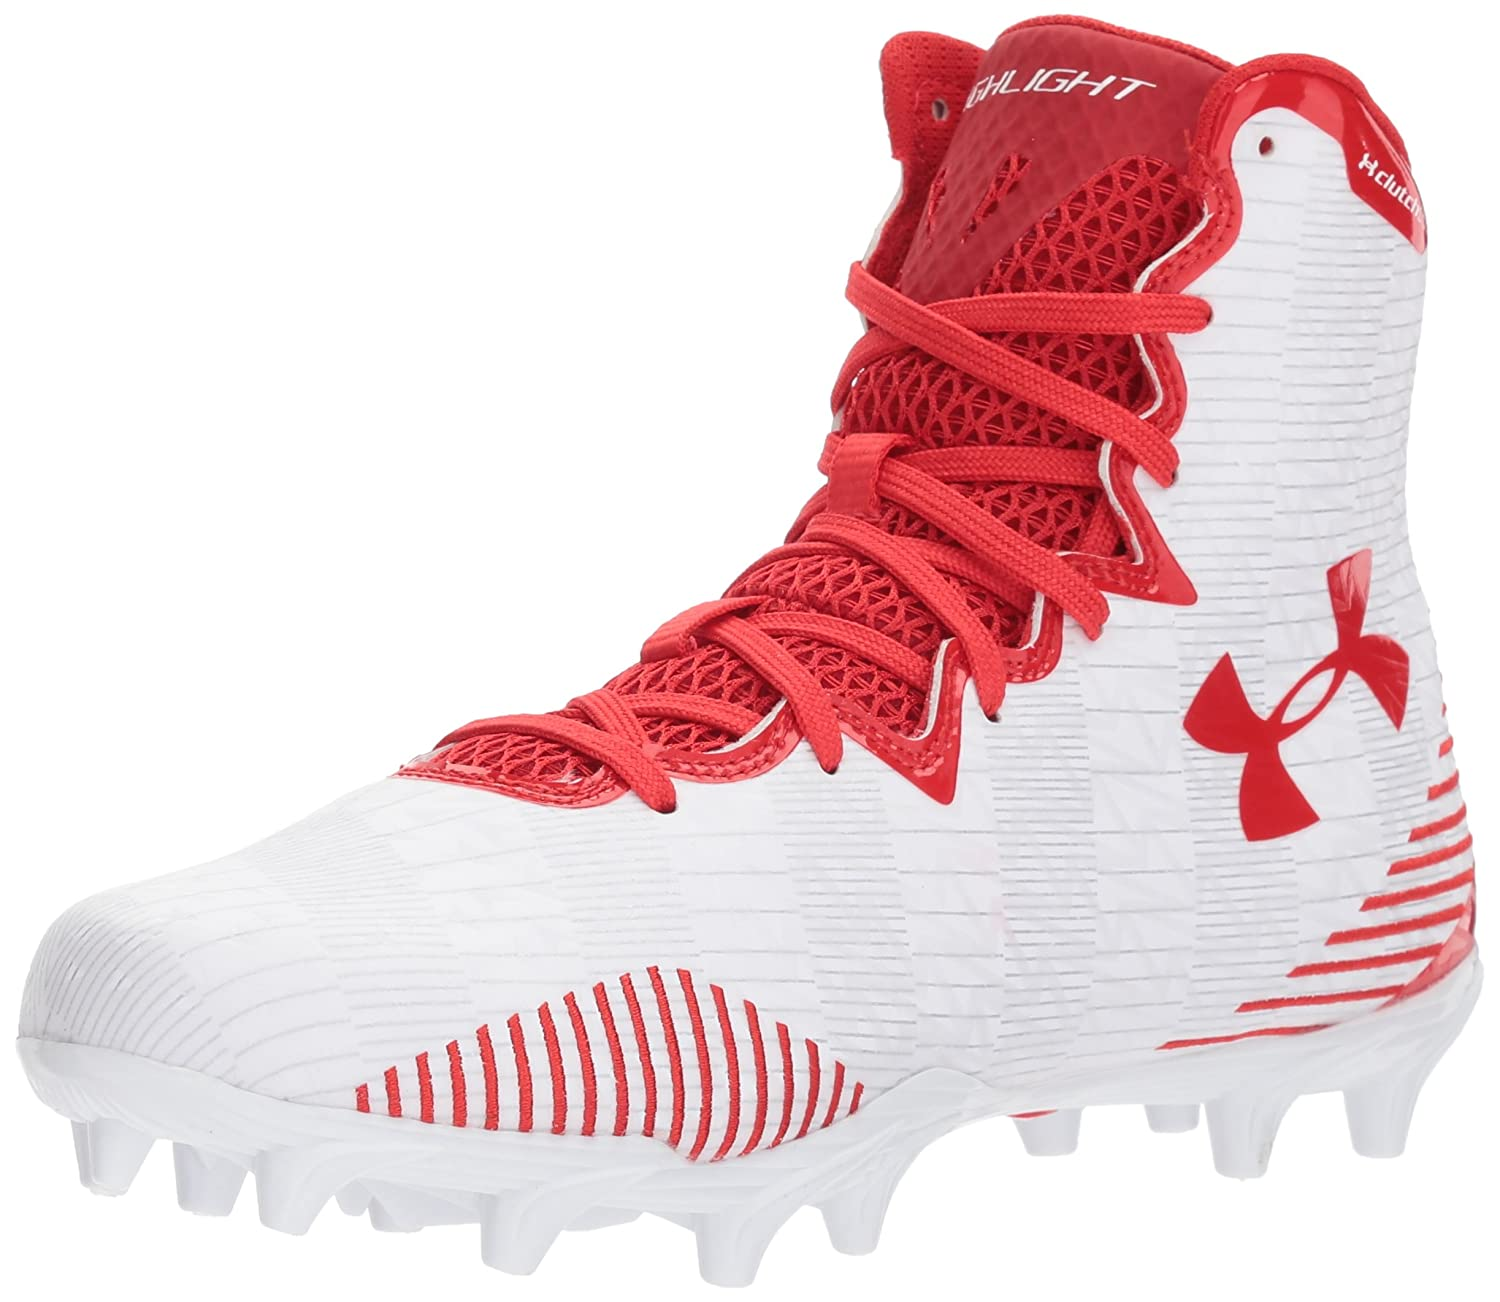 Under Armour Women's Lax Highlight MC Lacrosse Shoe B06XKDK15G 10 M US|White (161)/Red